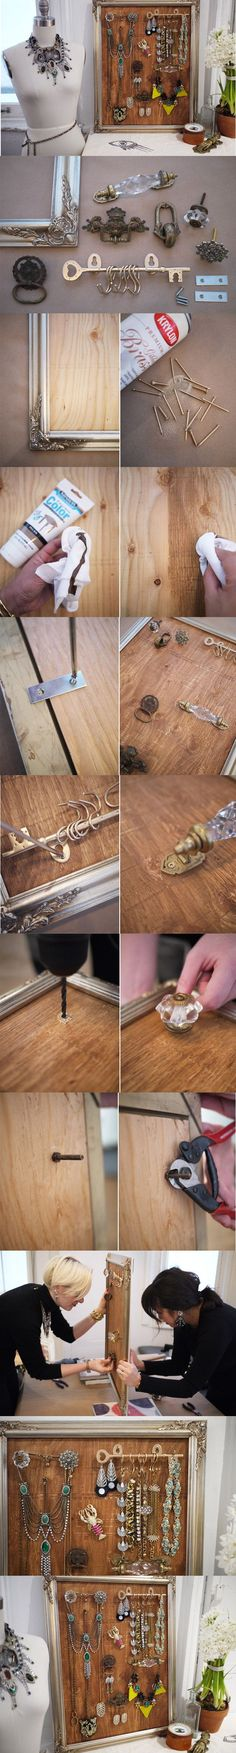 DIY:  Jewelry Design Board - made using repurposed hardware and a frame.